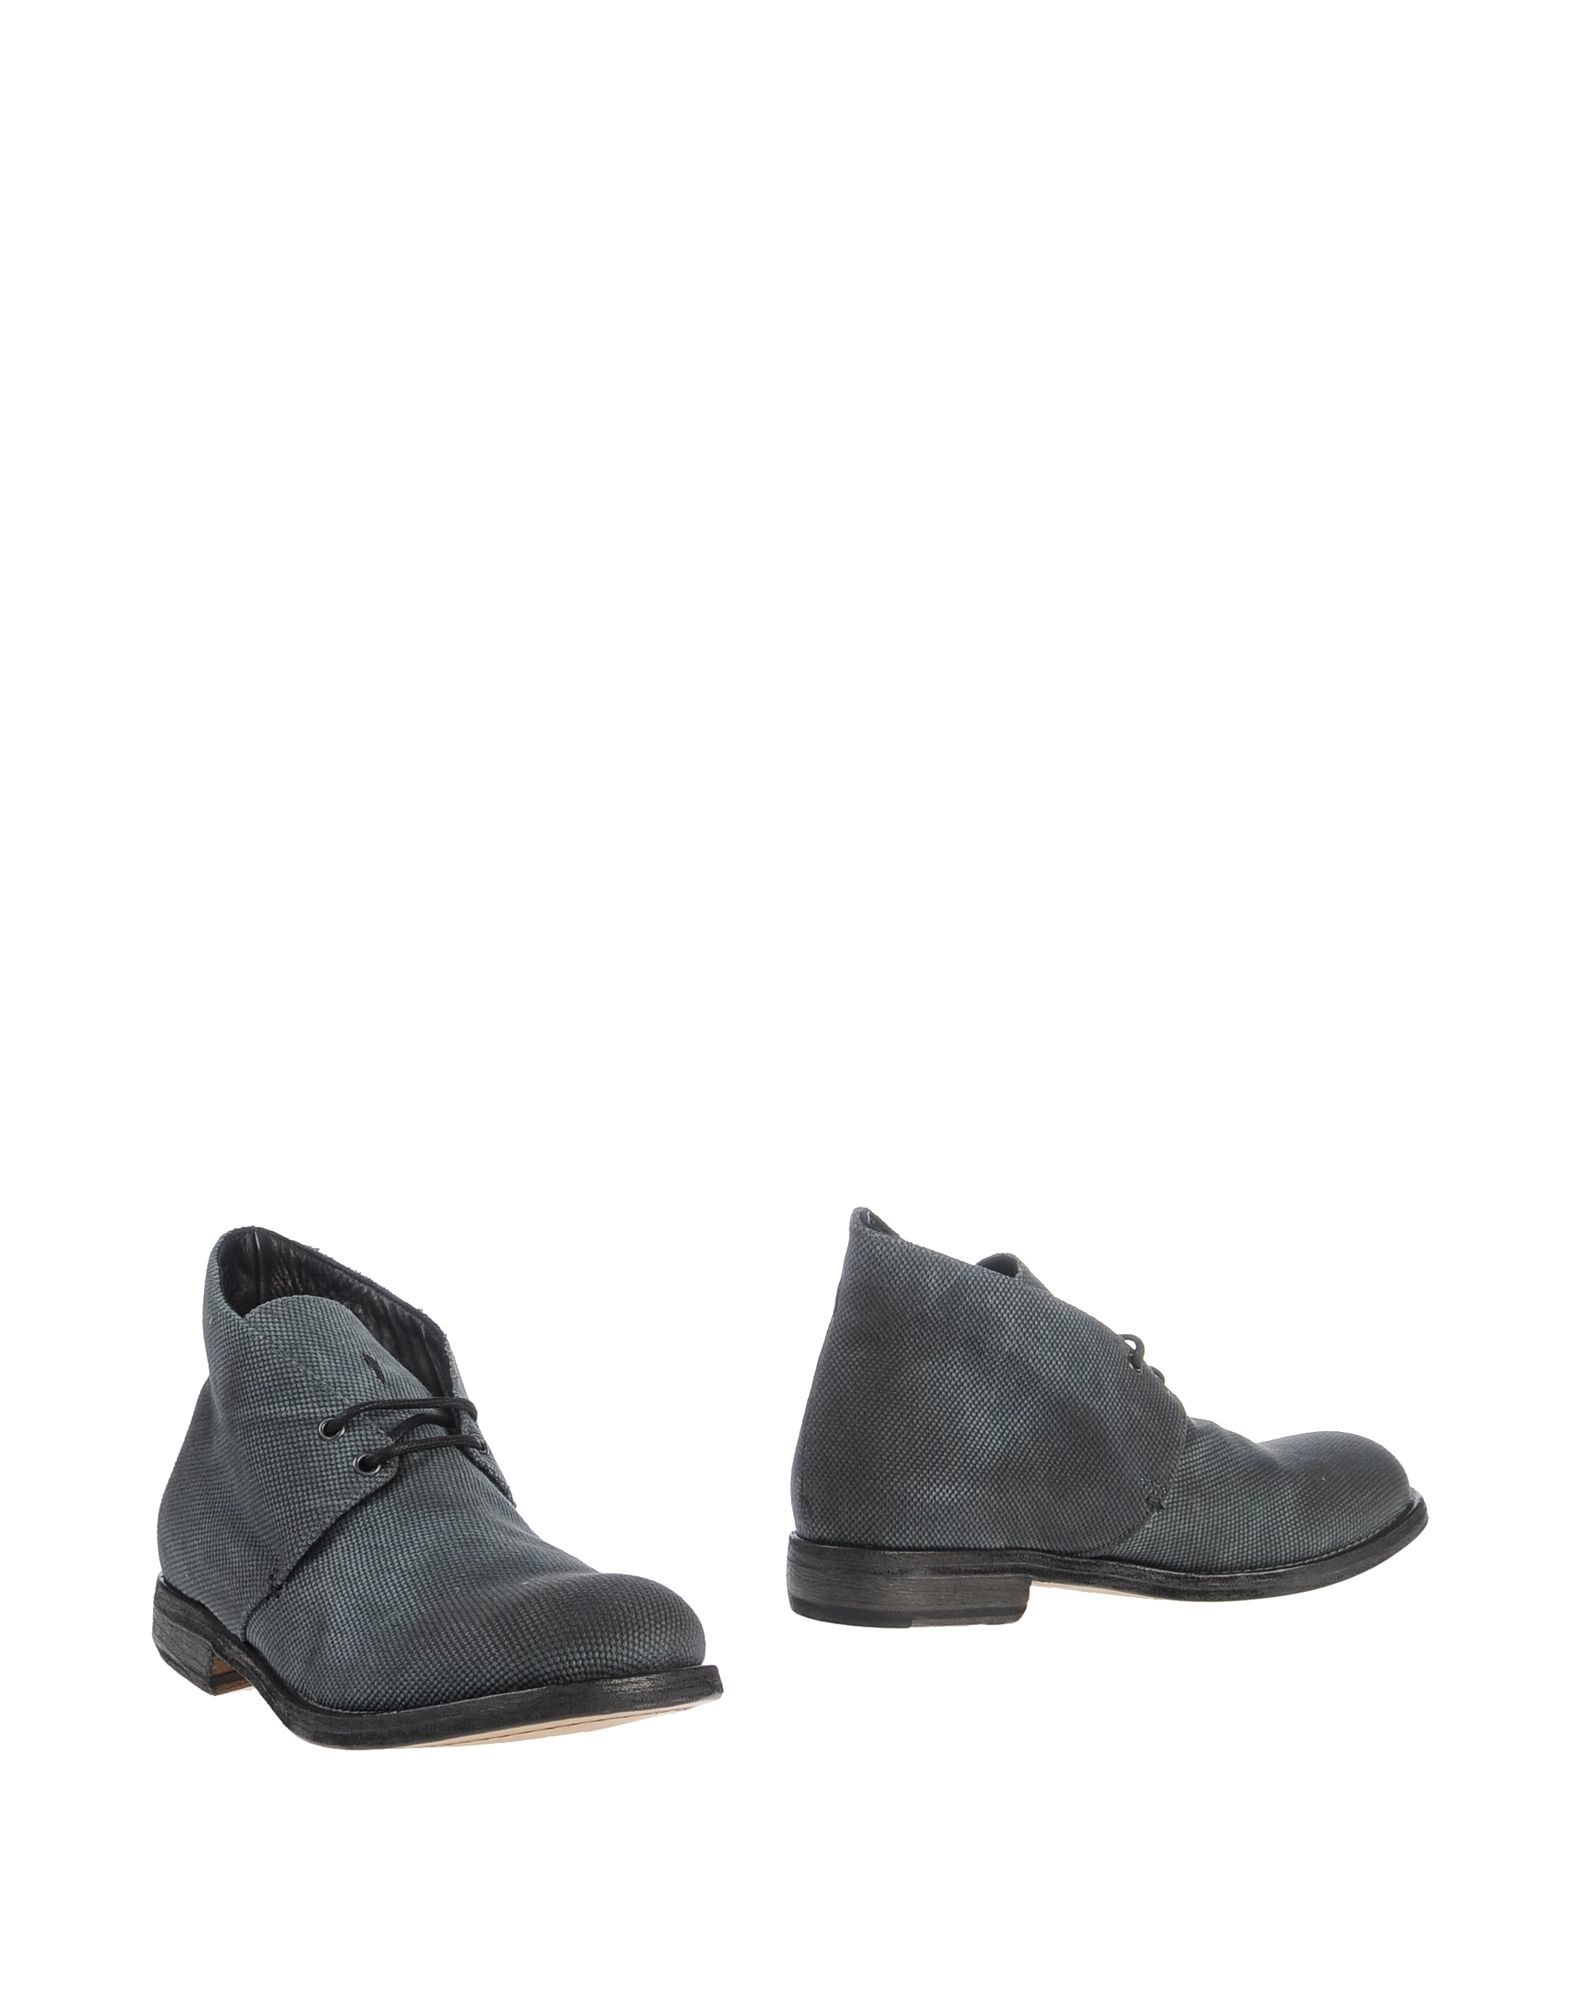 Ago Black Side Zip Boots By John Varvatos